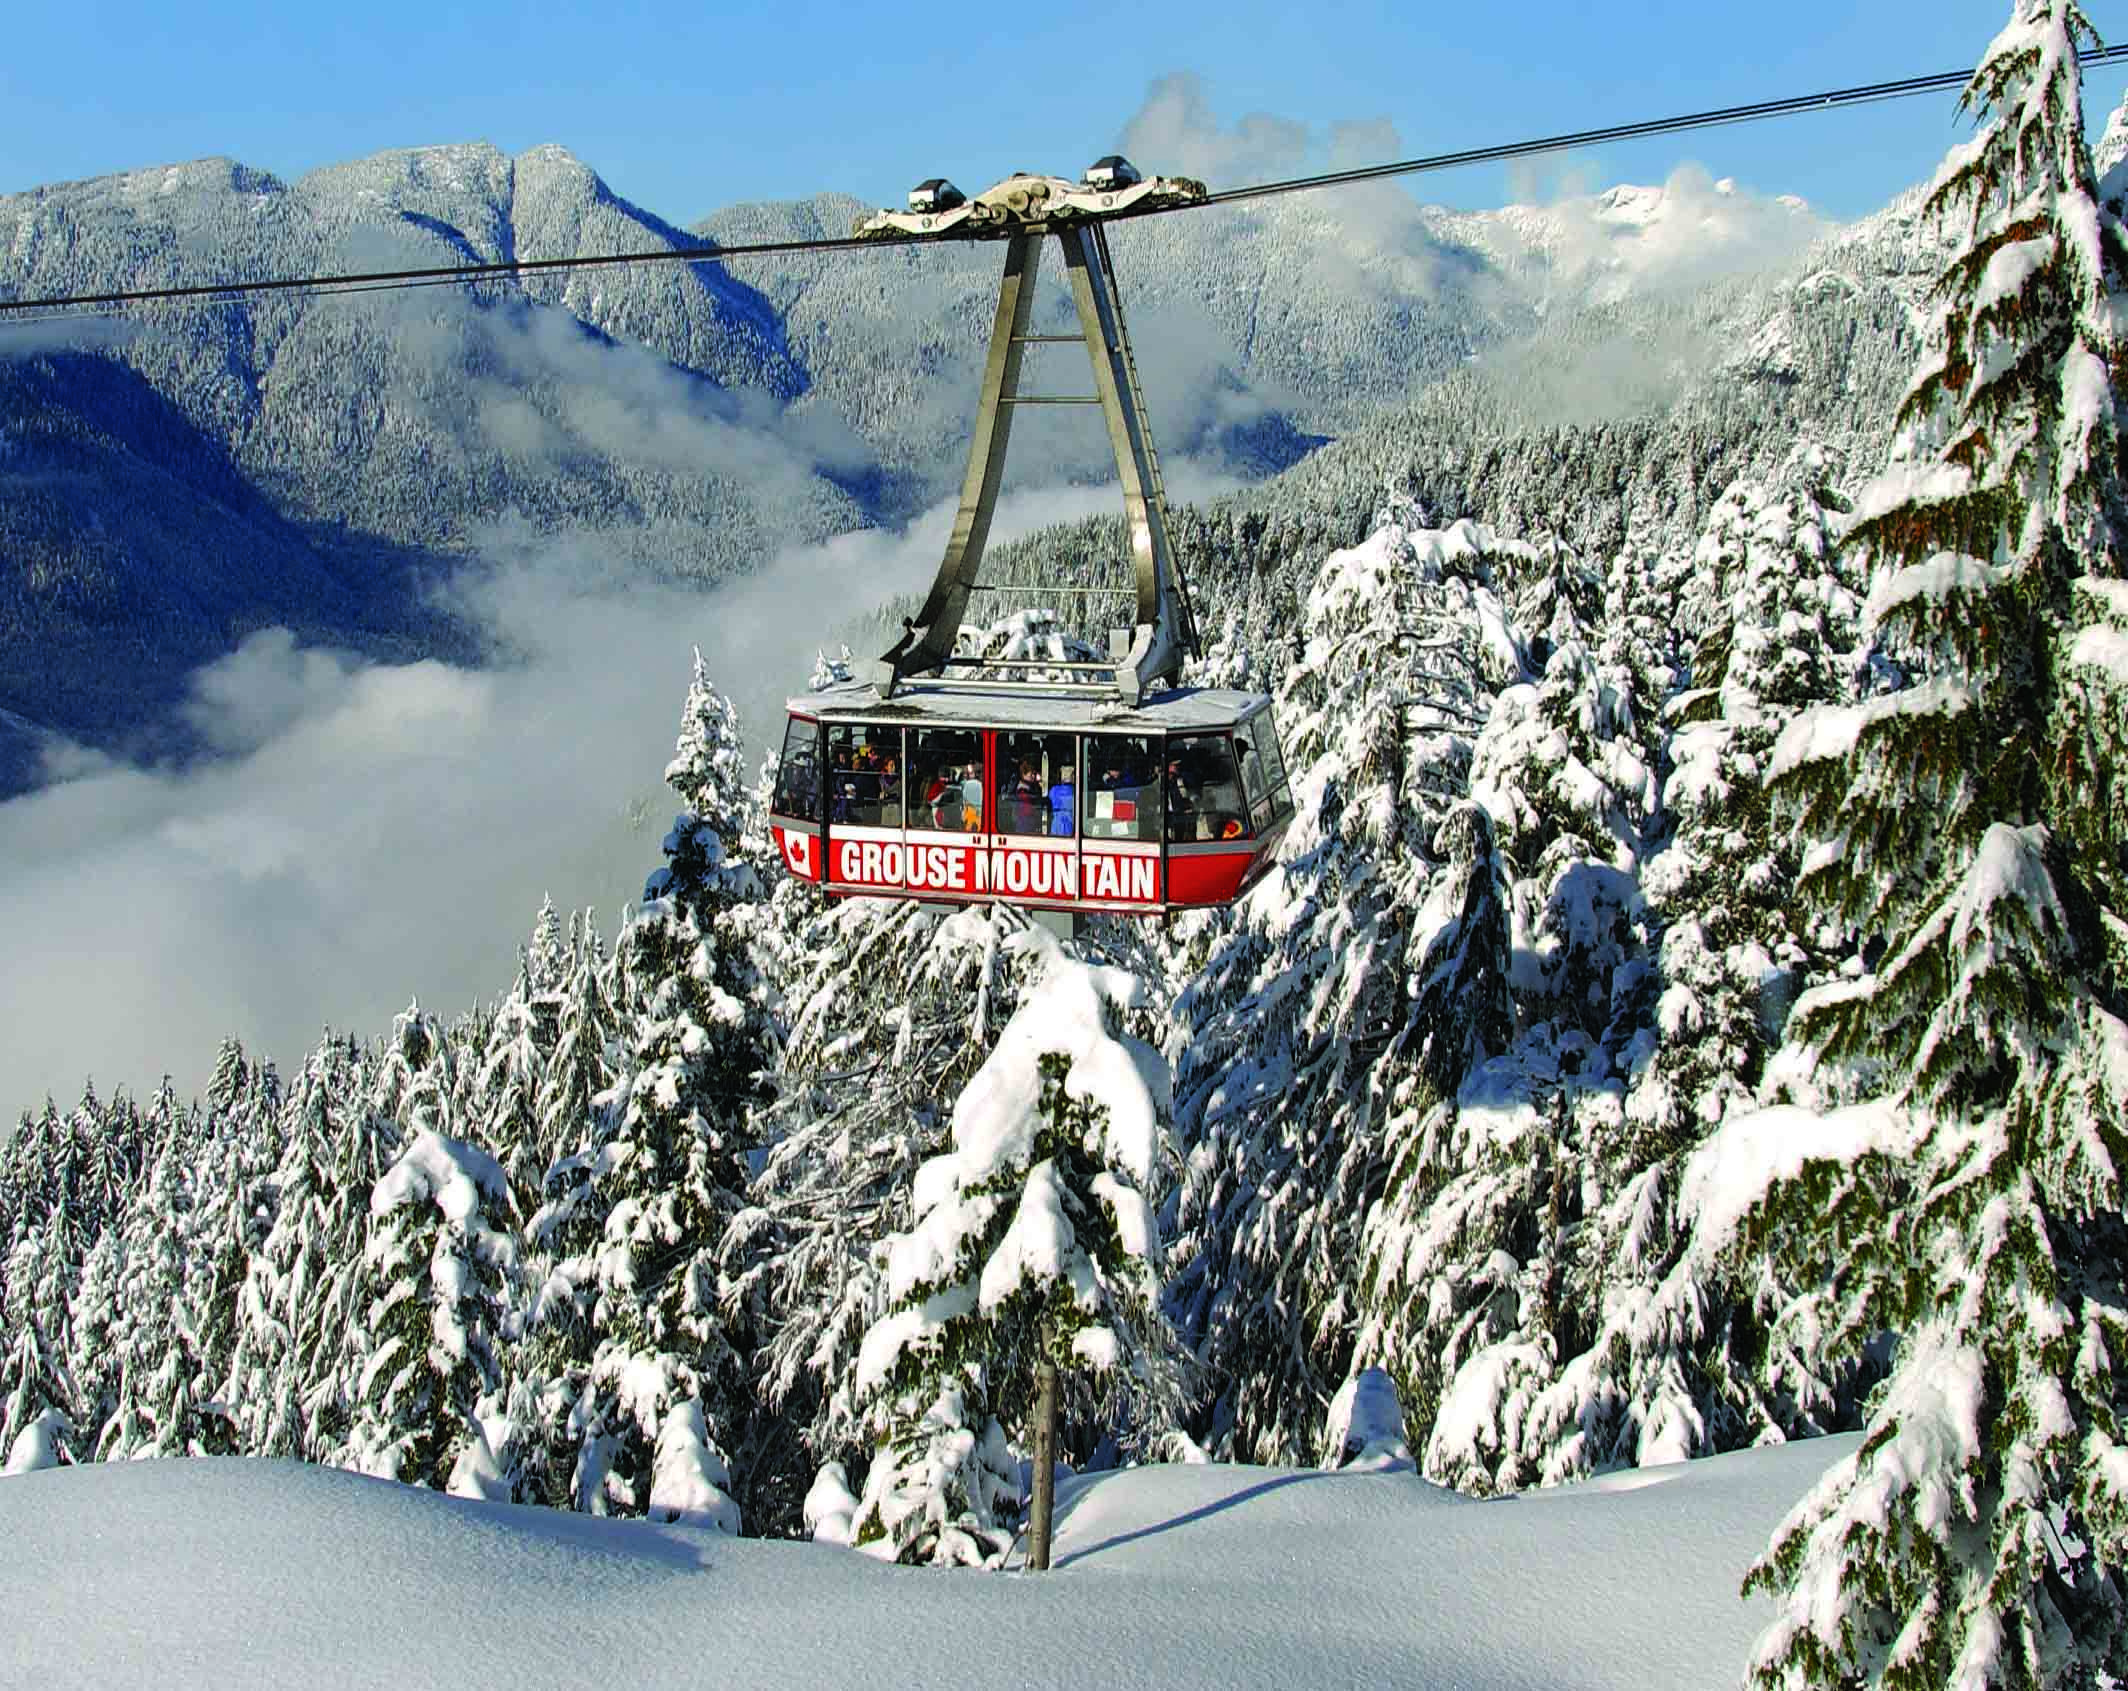 A snowy Super Skyride to the Peak of Grouse Mountain